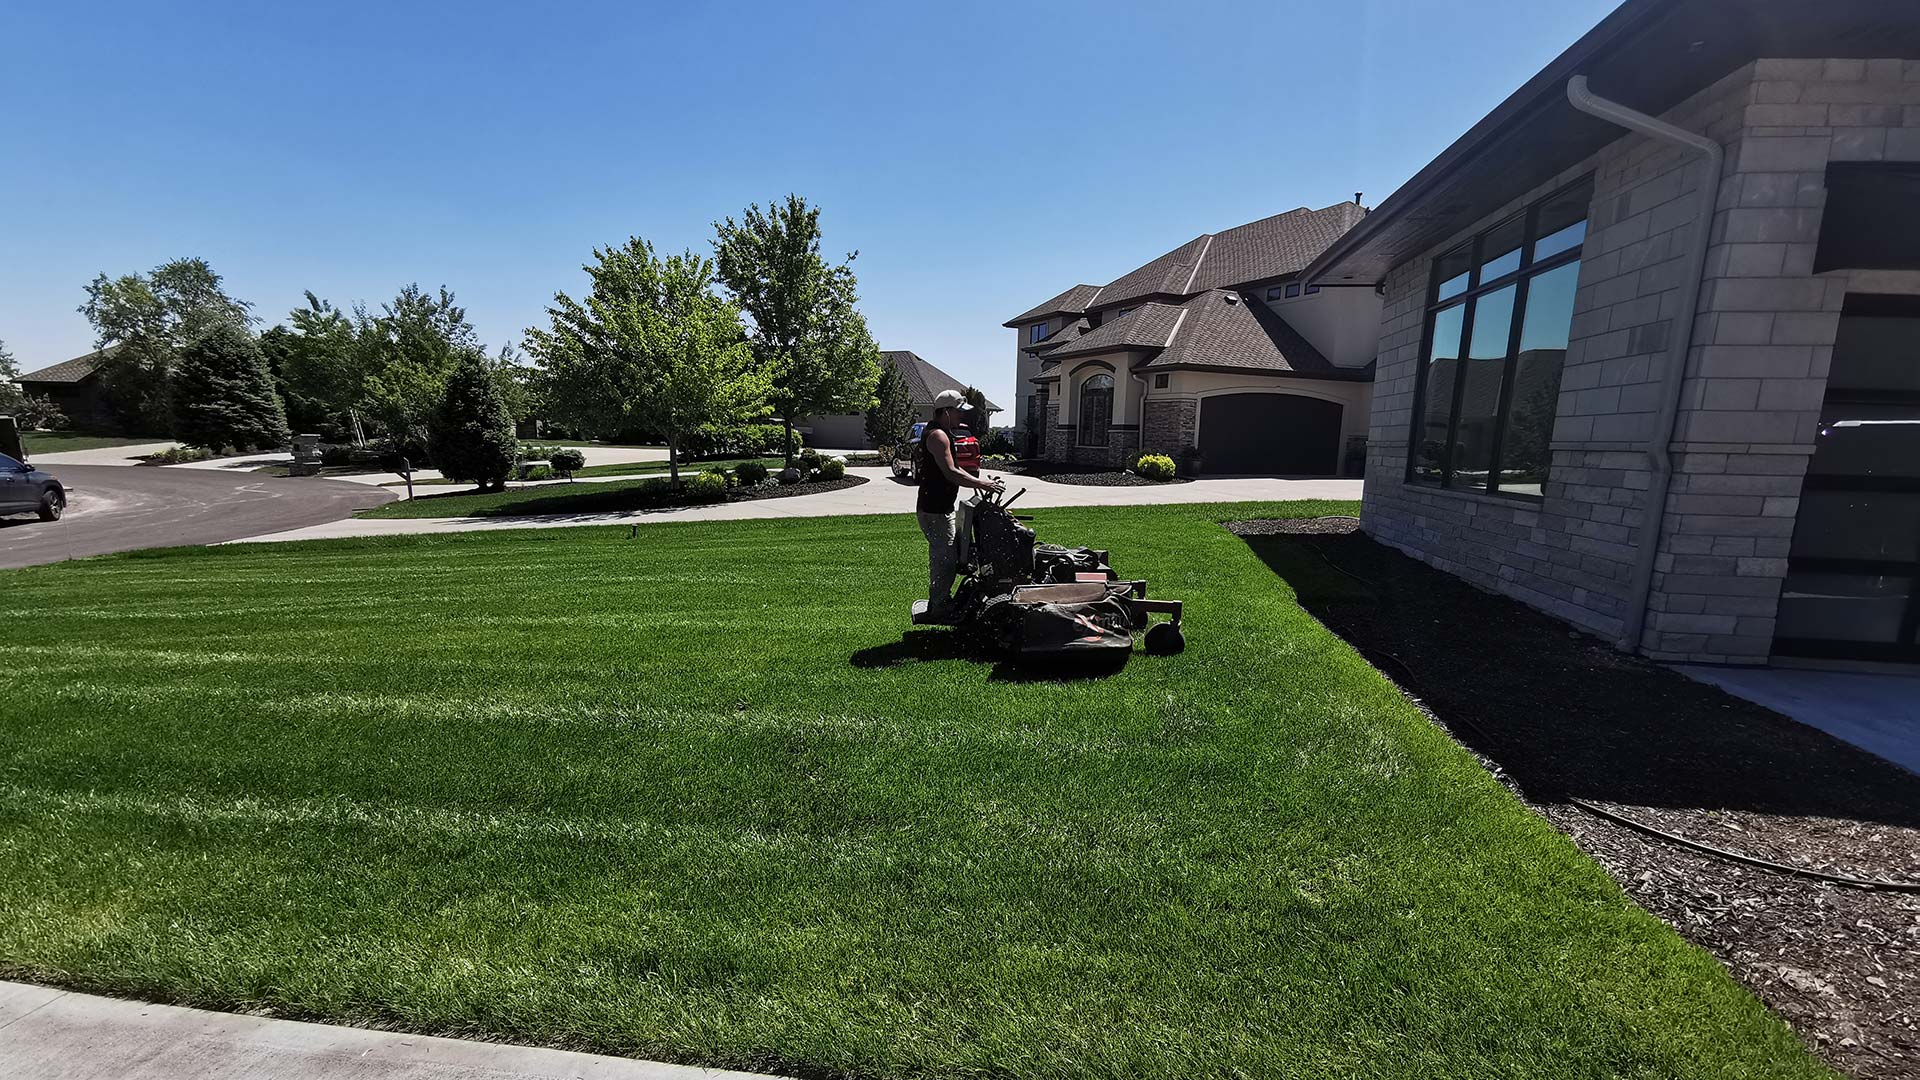 Our landscaper on a lawn mower near a home in Valley, NE.